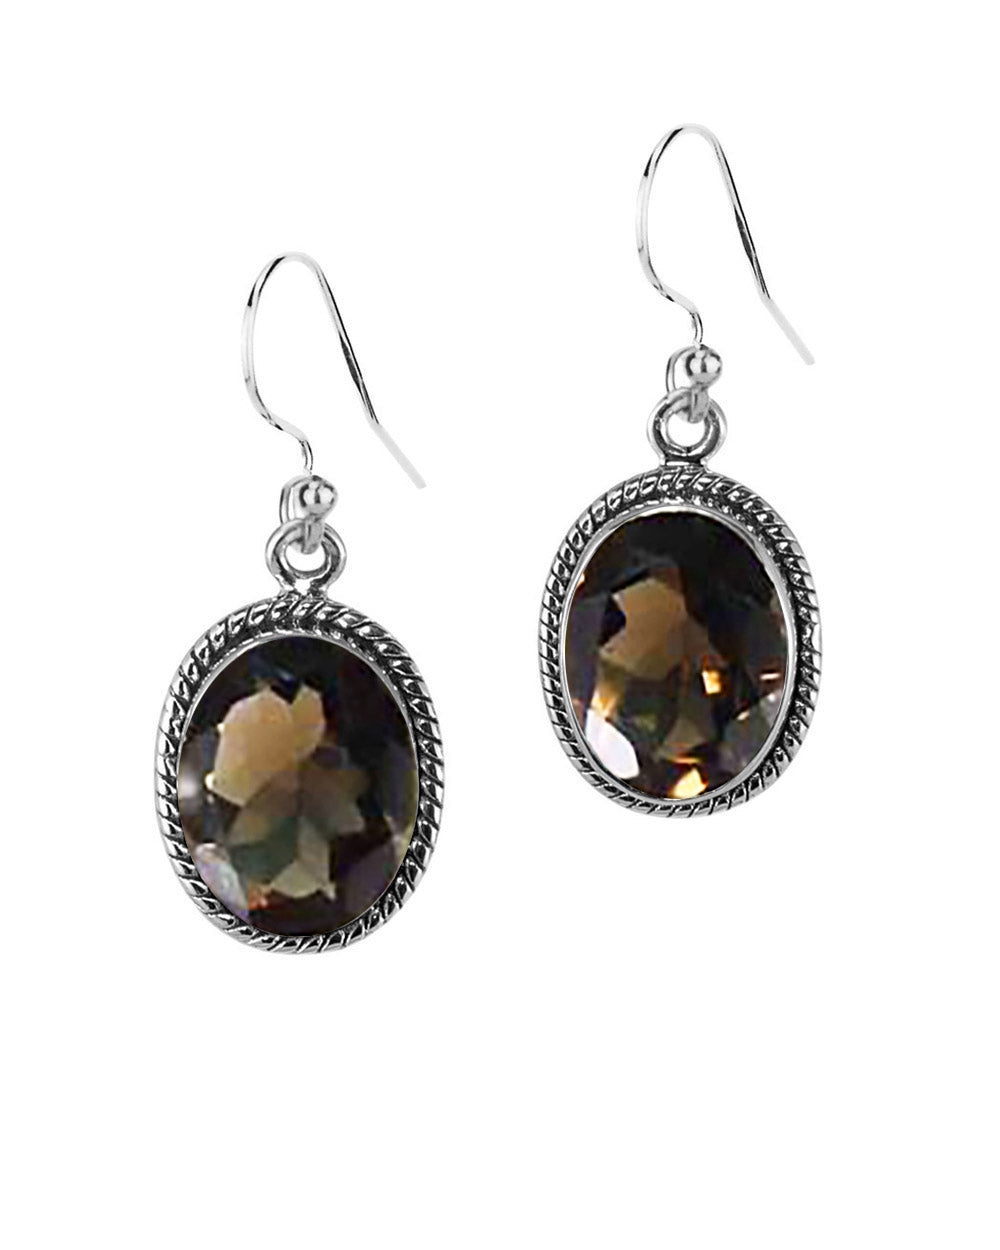 Oval Natural Smoky Quartz Sterling Silver Statement Earrings